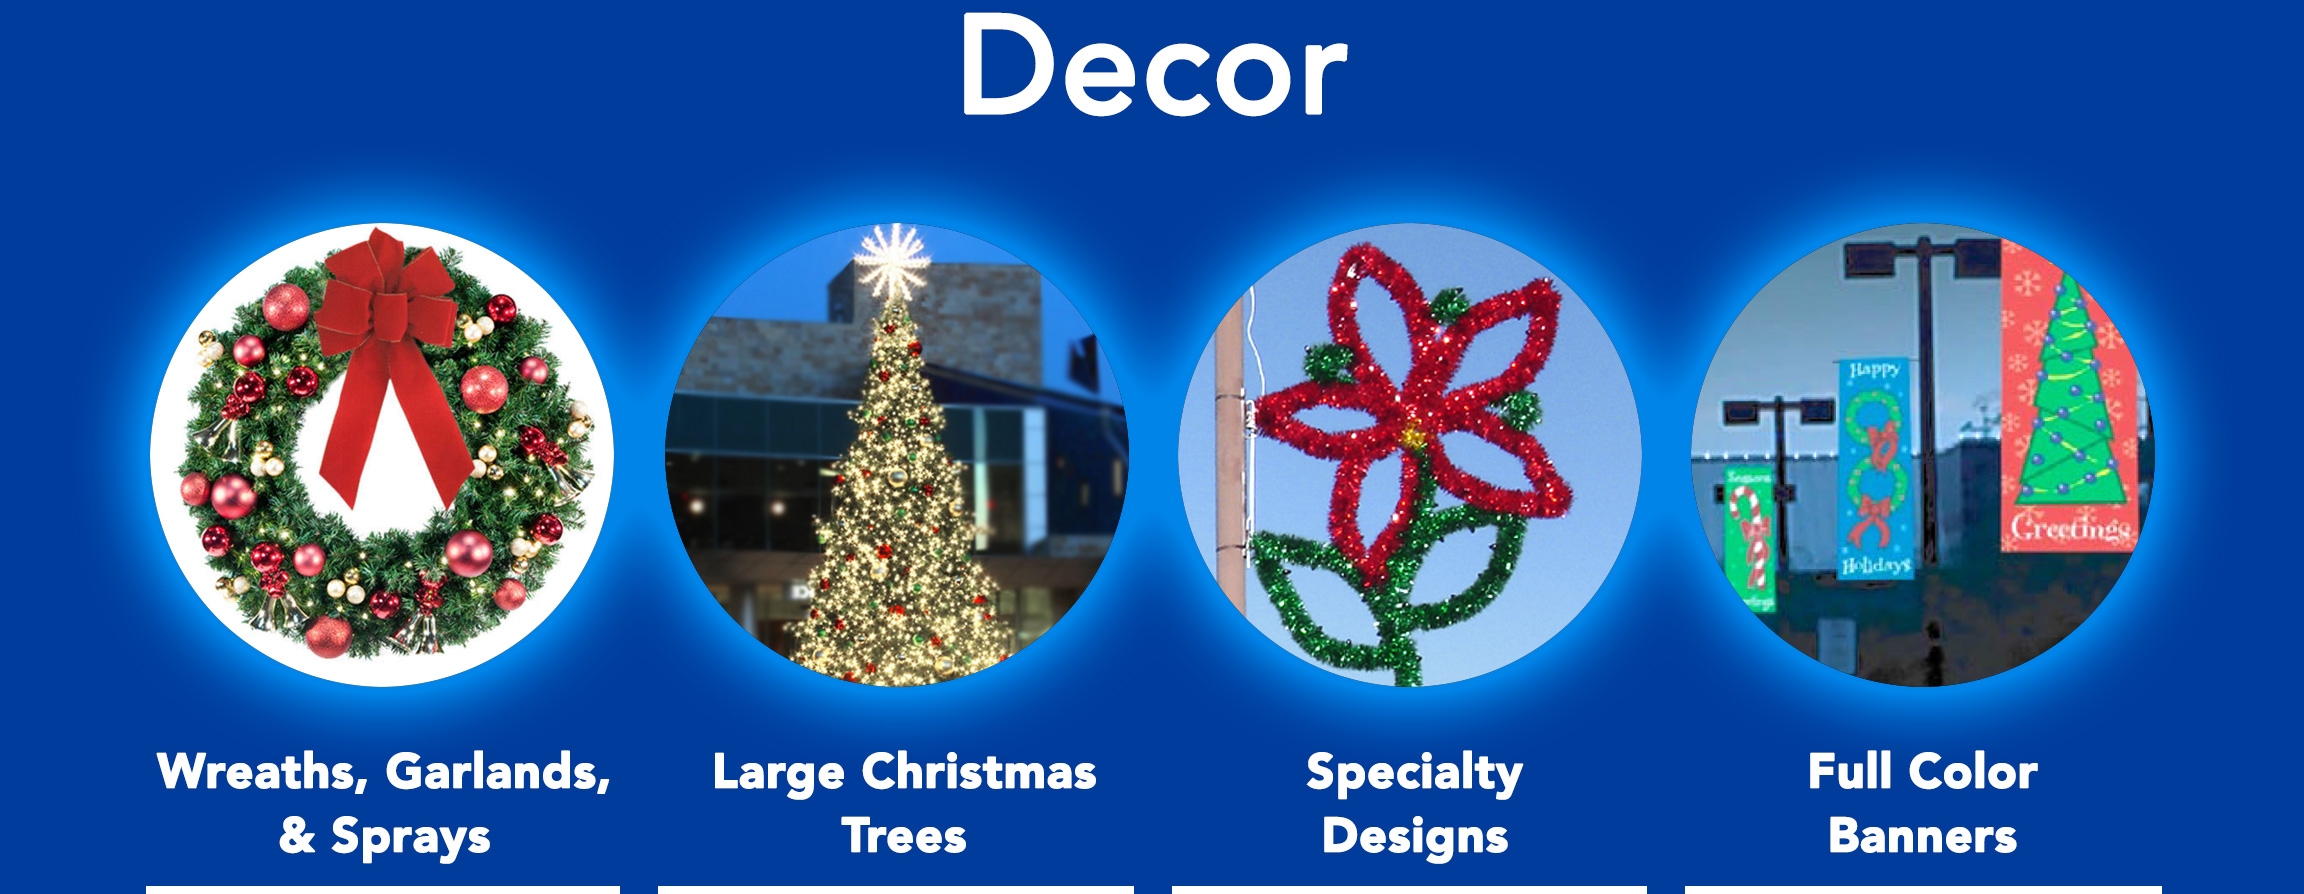 Wreaths, Garlands, & Sprays. Large Christmas Trees. Specialty Lighted & Garland Designs. Full color pole mounted holiday banners.